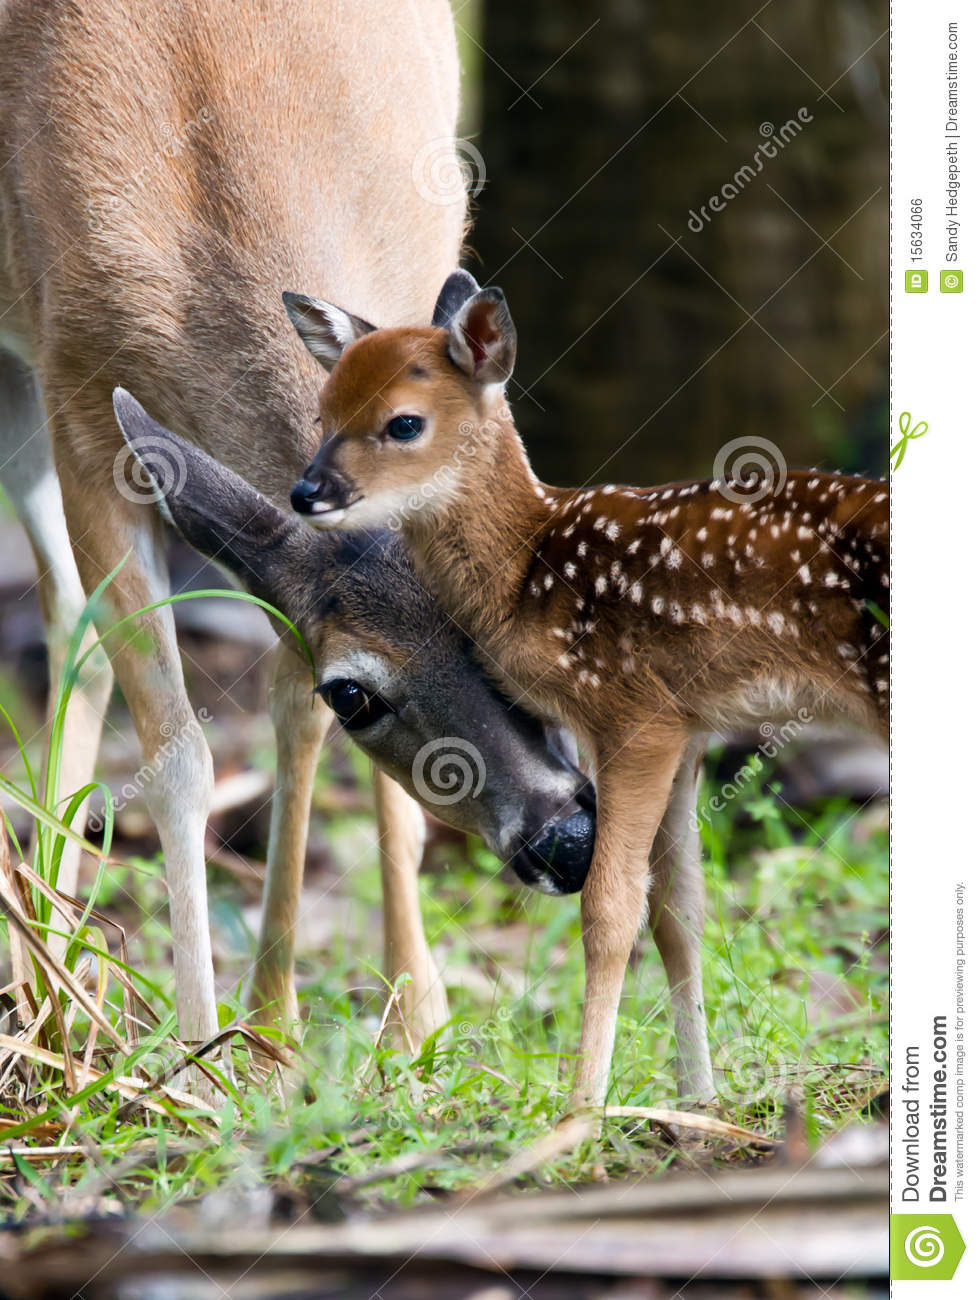 Doe Cleaning Her Young Fawn